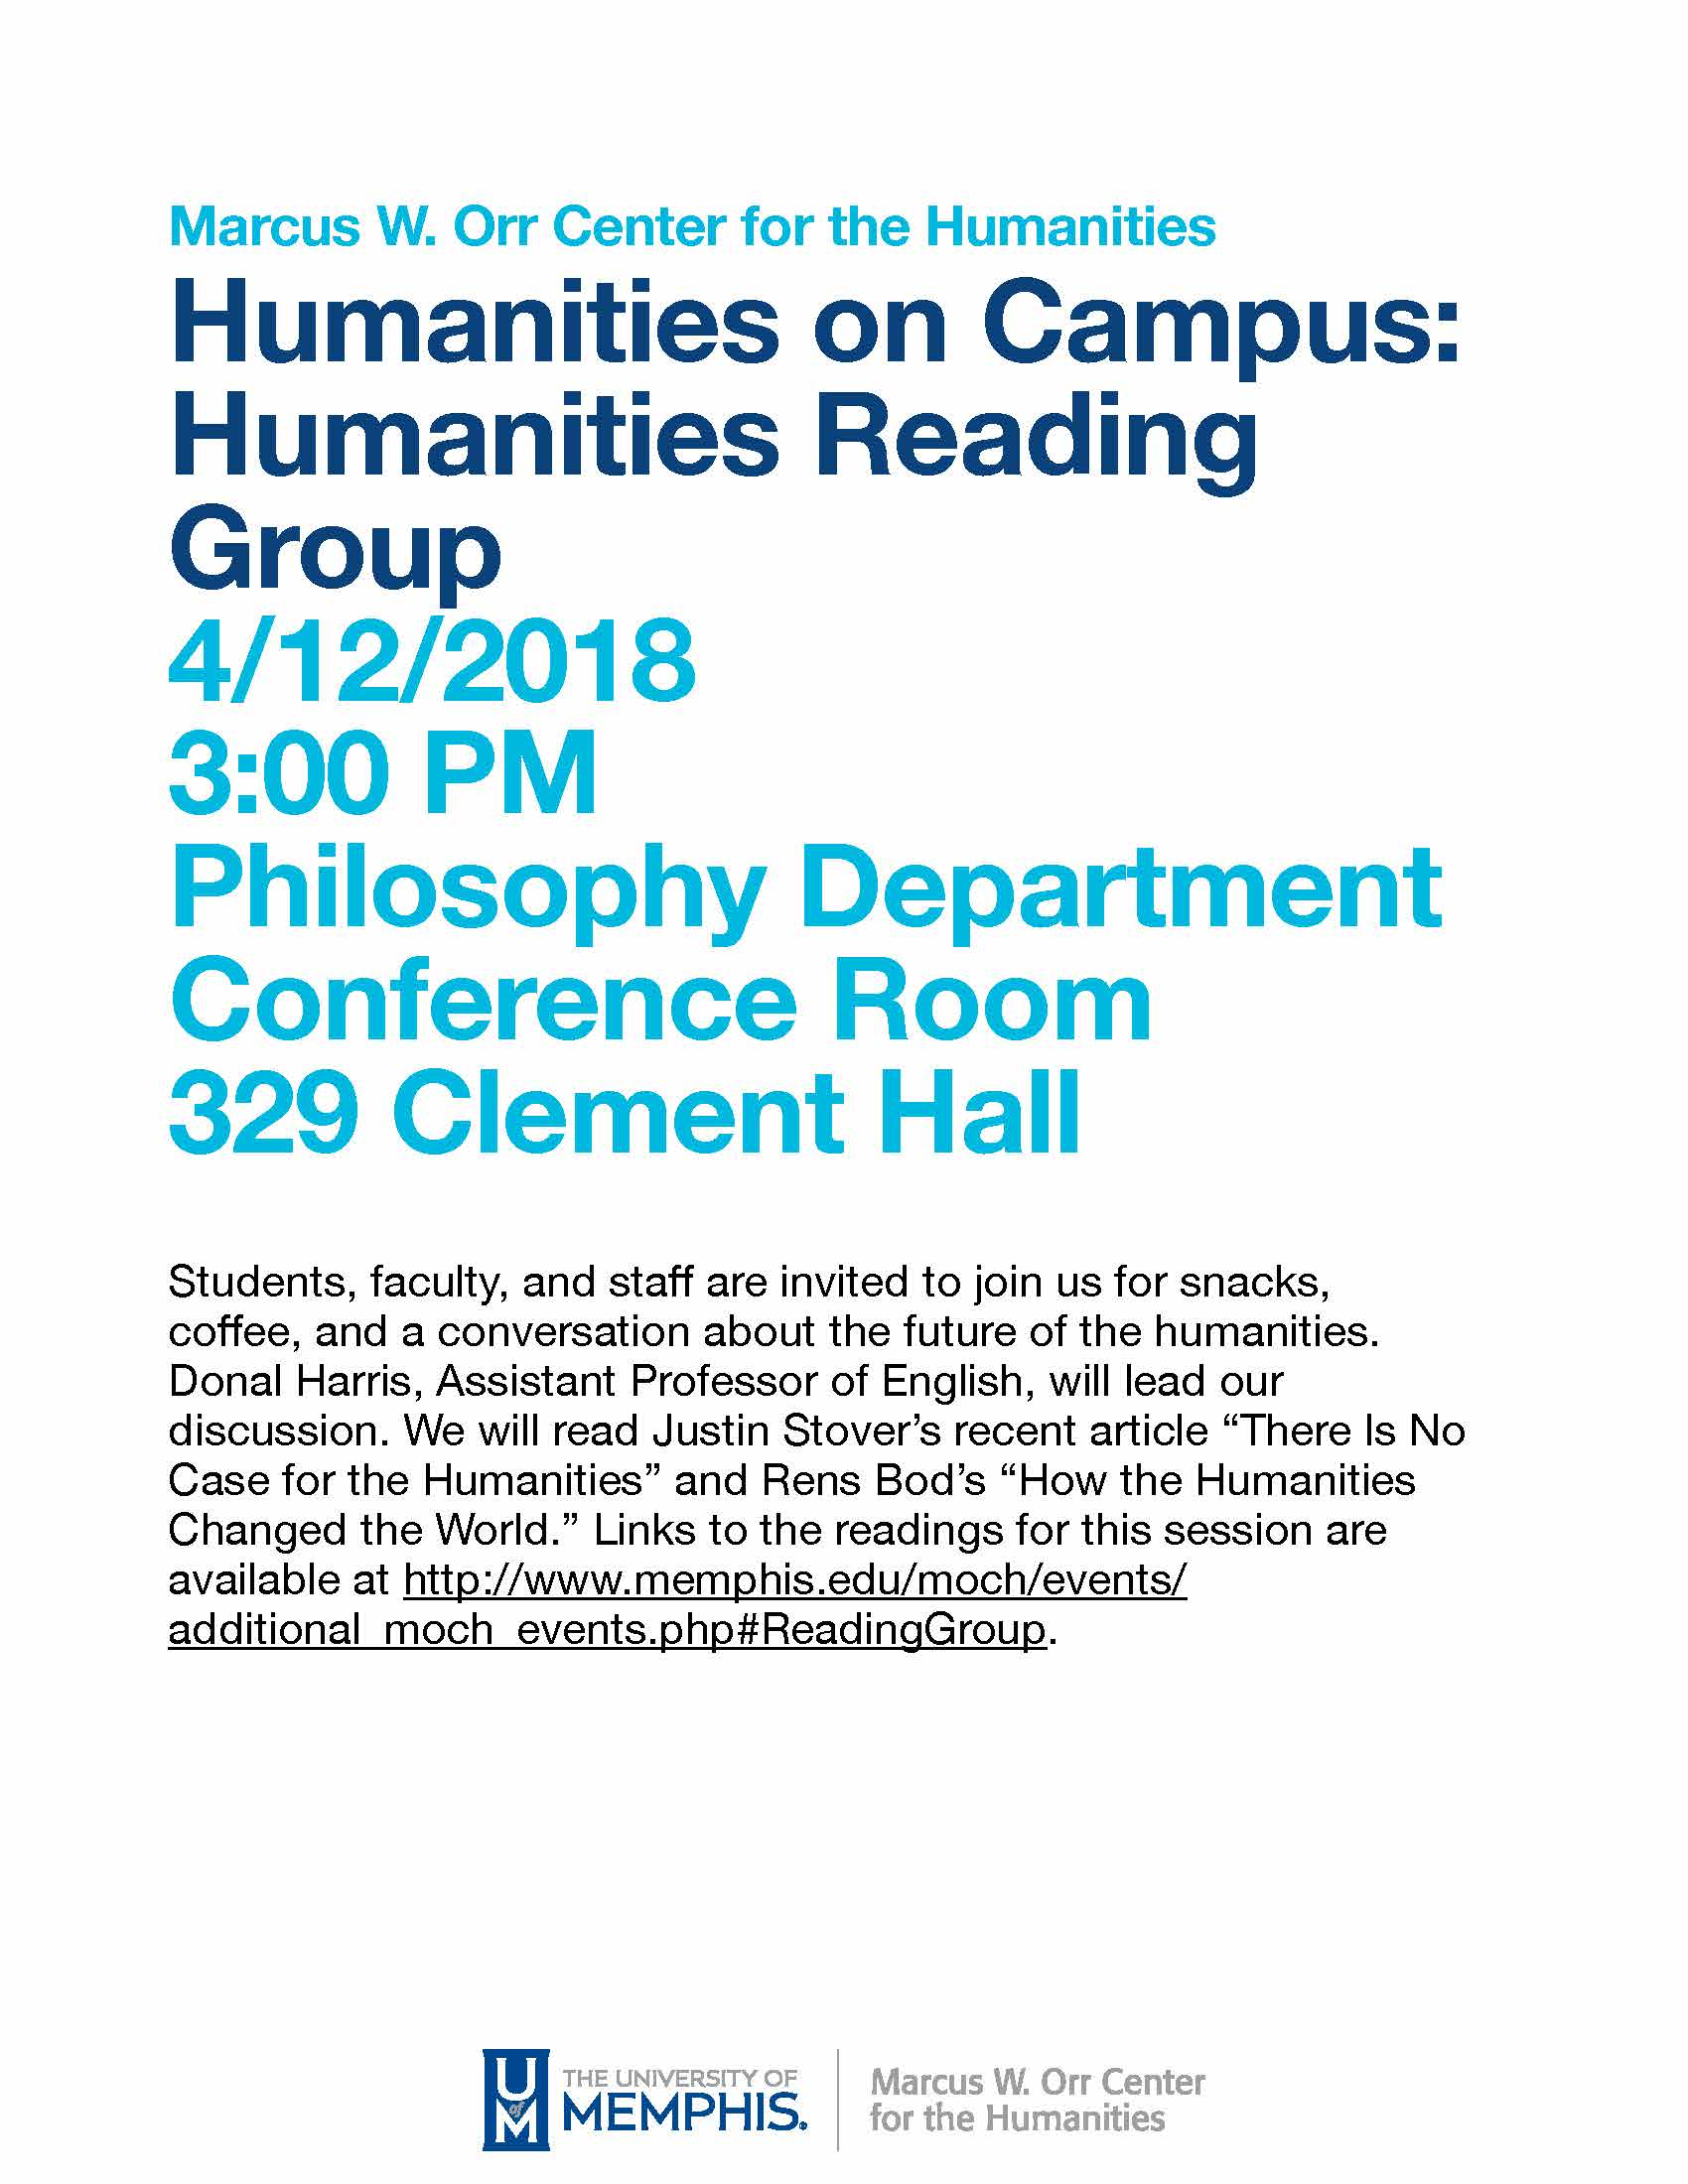 Humanities on Campus: Humanities Reading Group Flyer